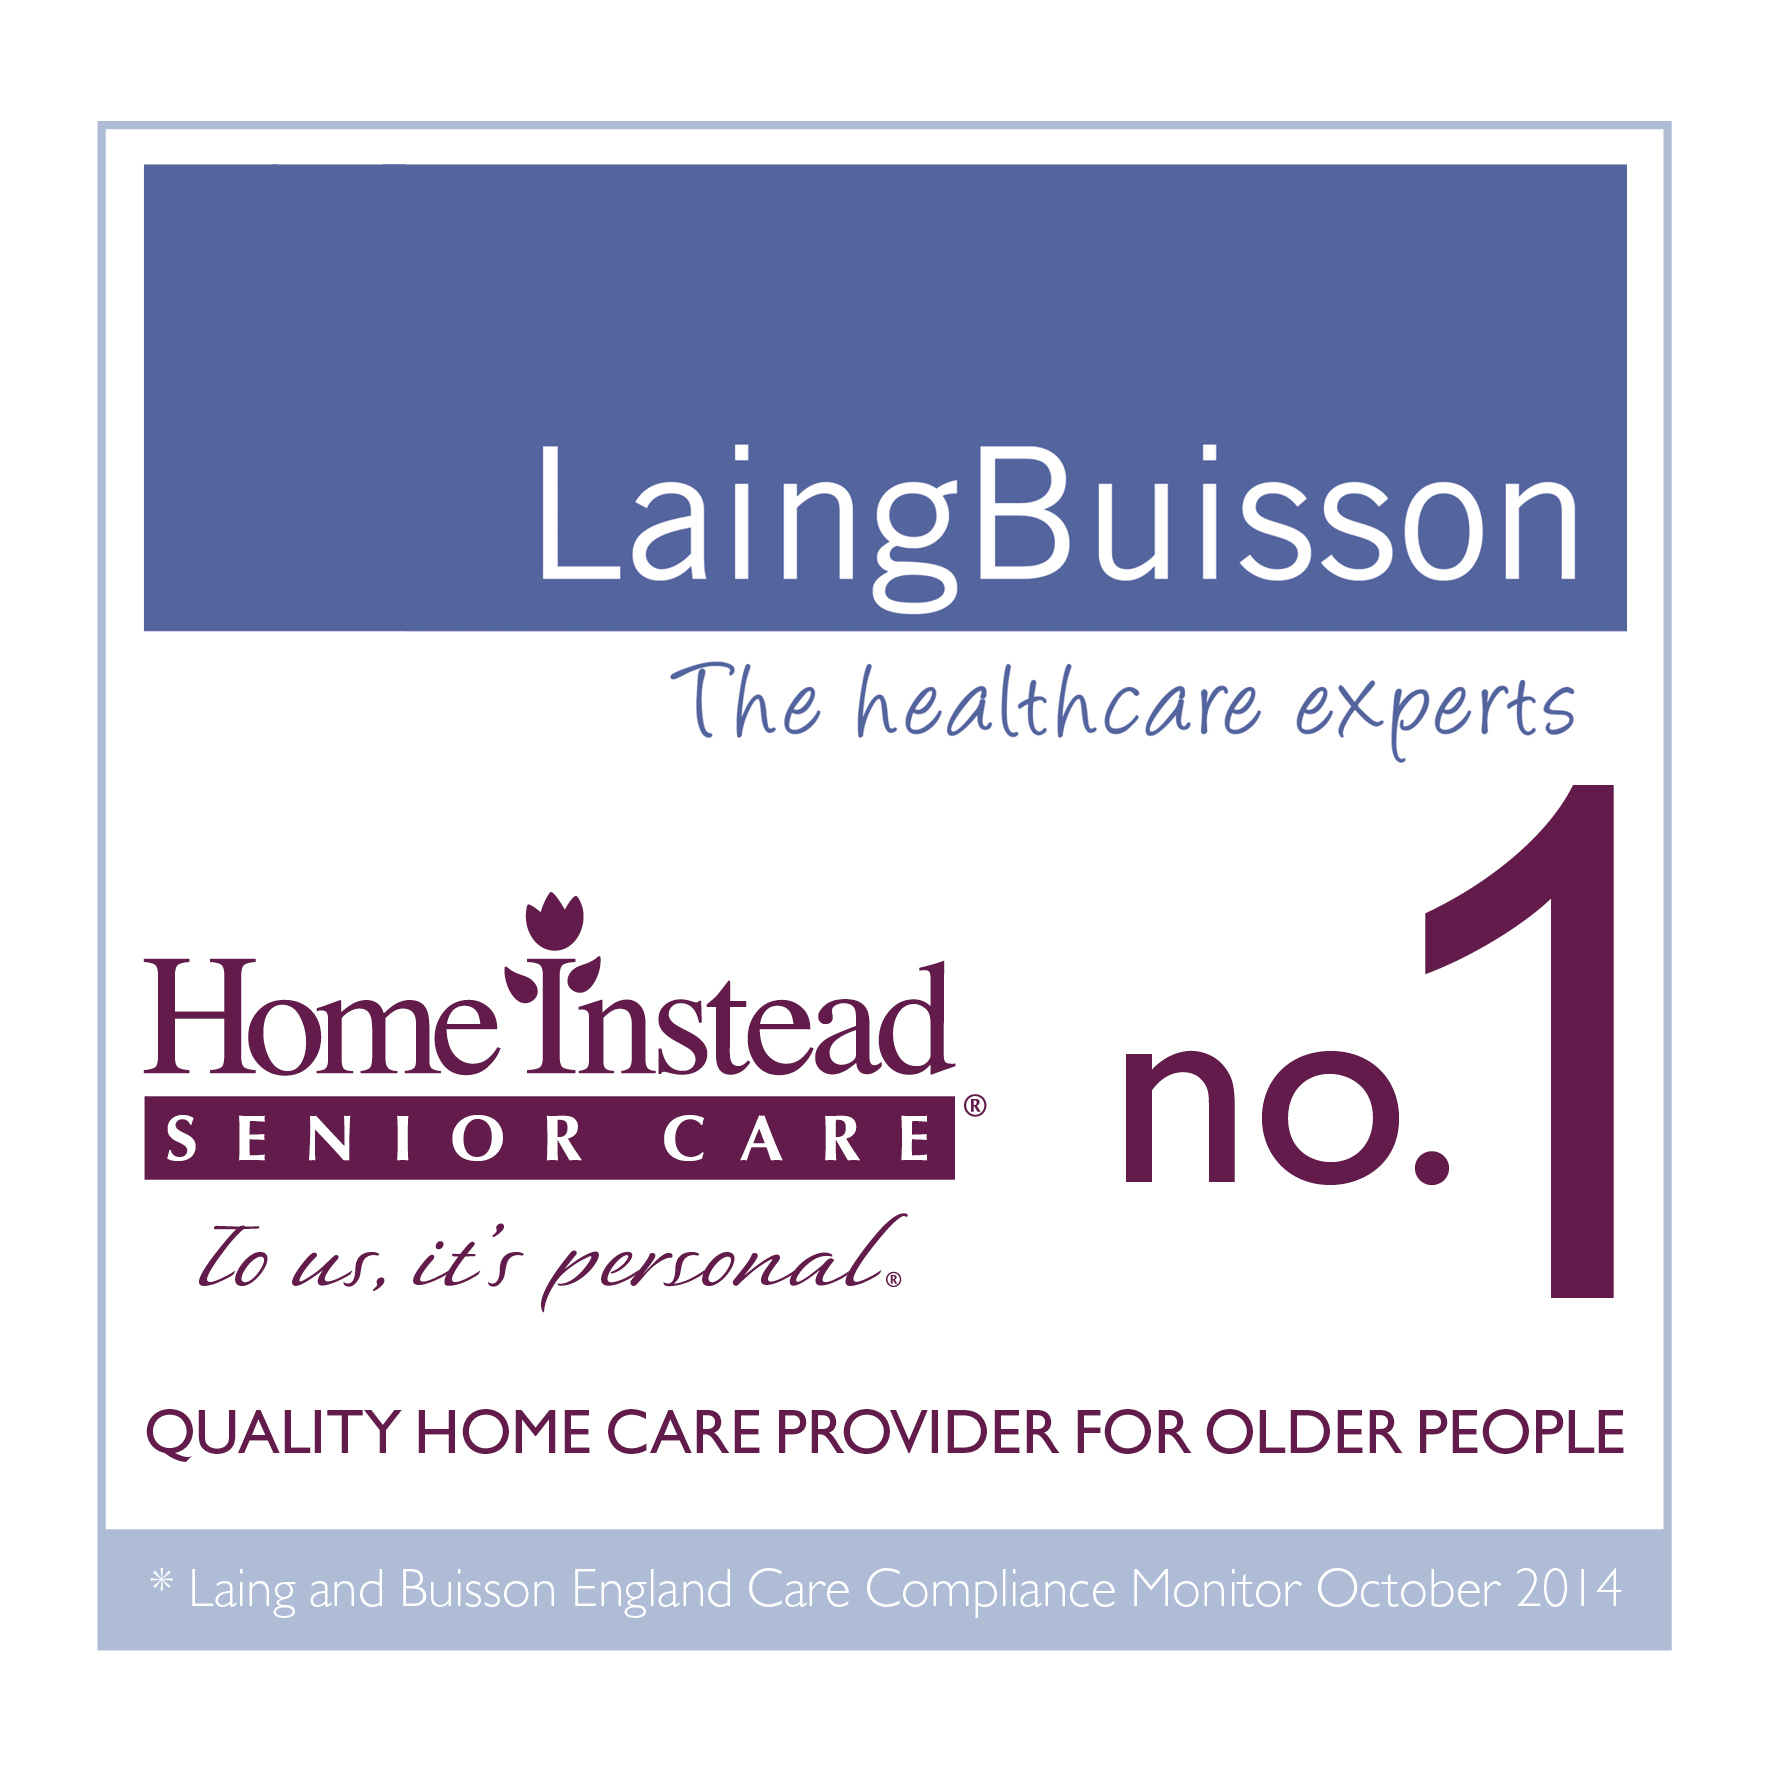 Home Instead leading as the no.1 homecare provider for the elderly according to Laing Buisson